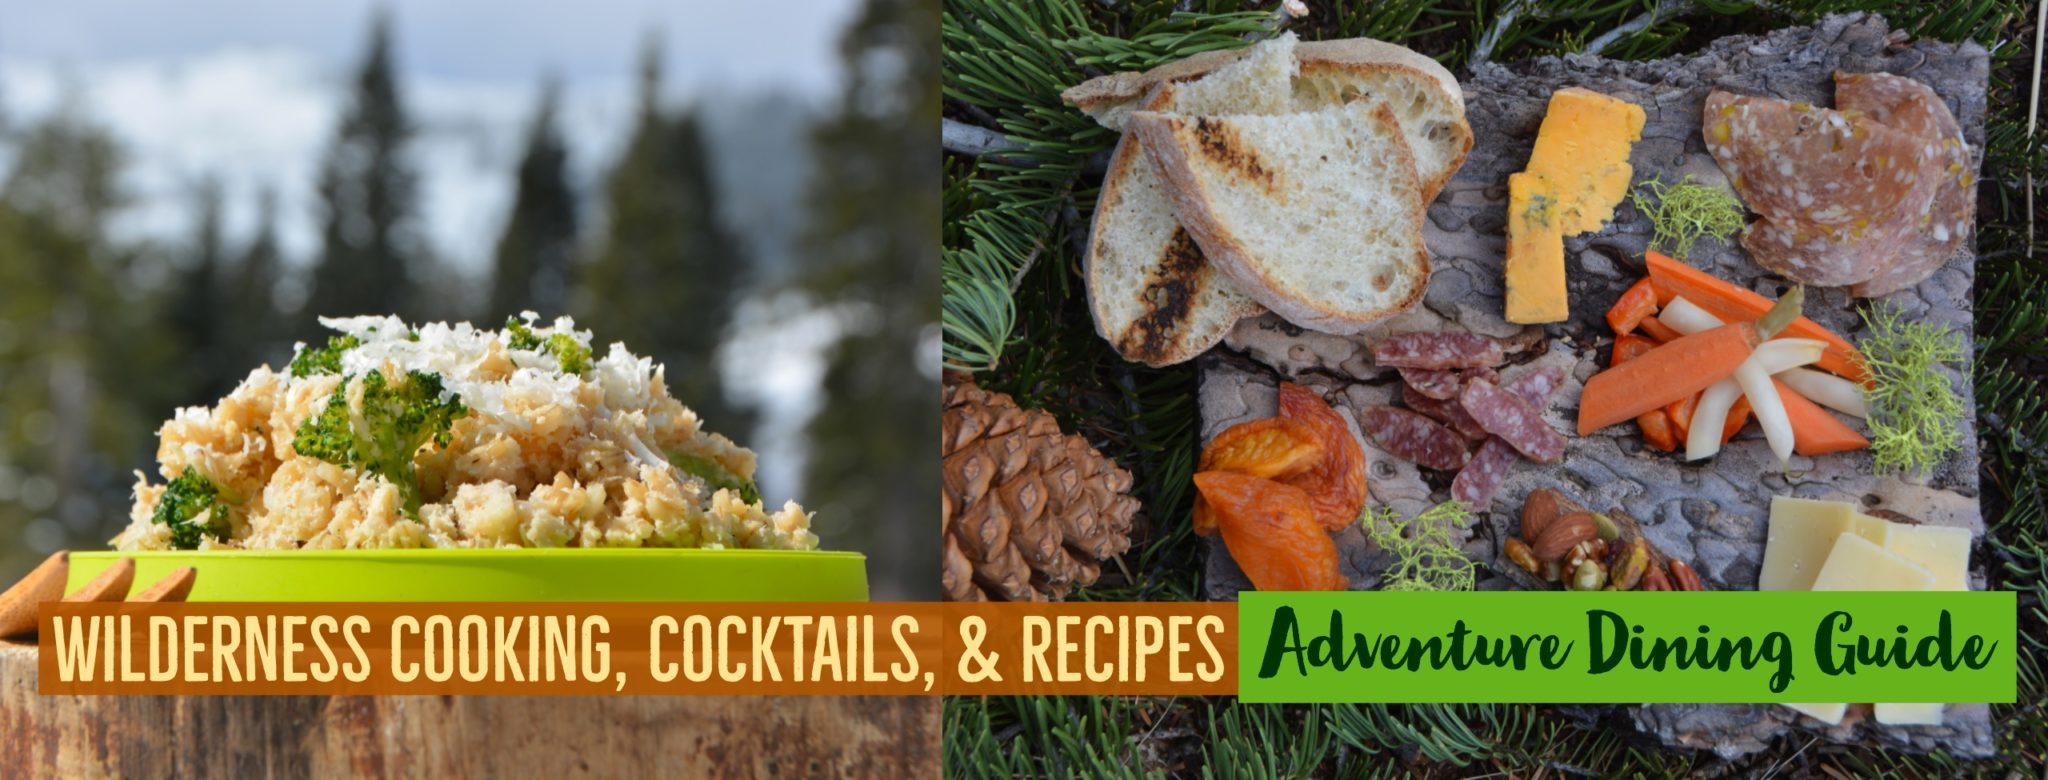 about adventure dining guide lake tahoe california